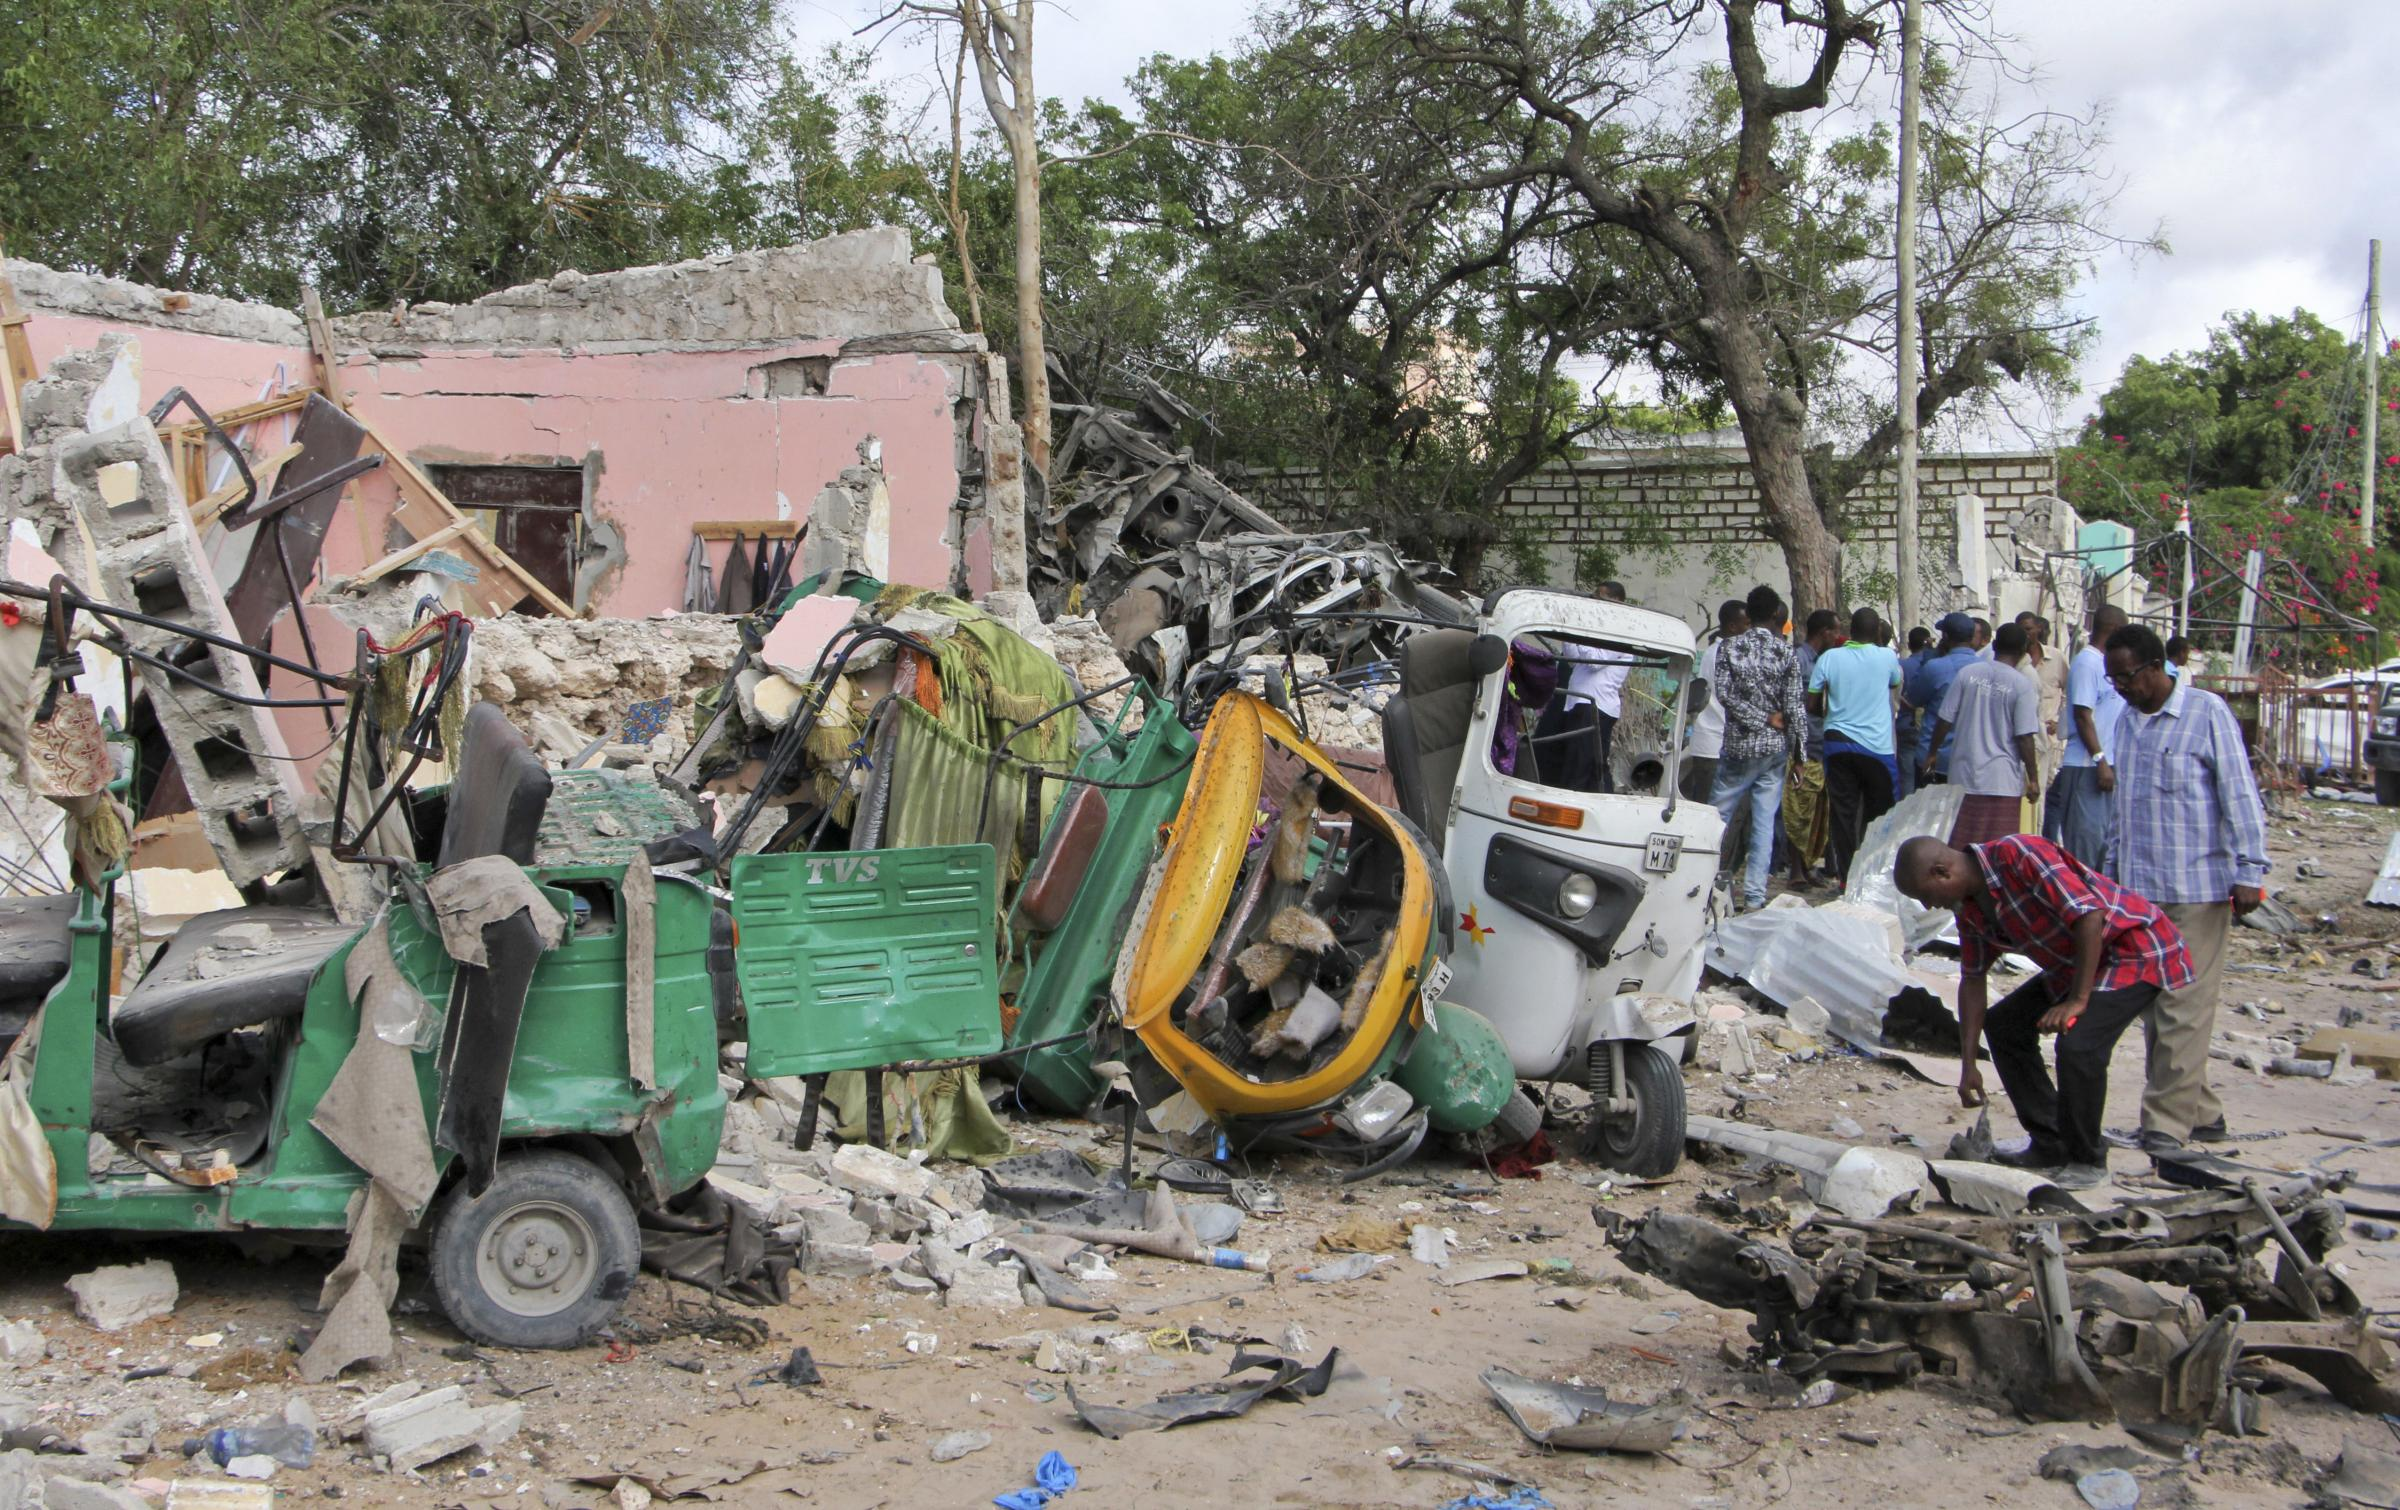 Death toll in Somalia restaurant siege up to 31